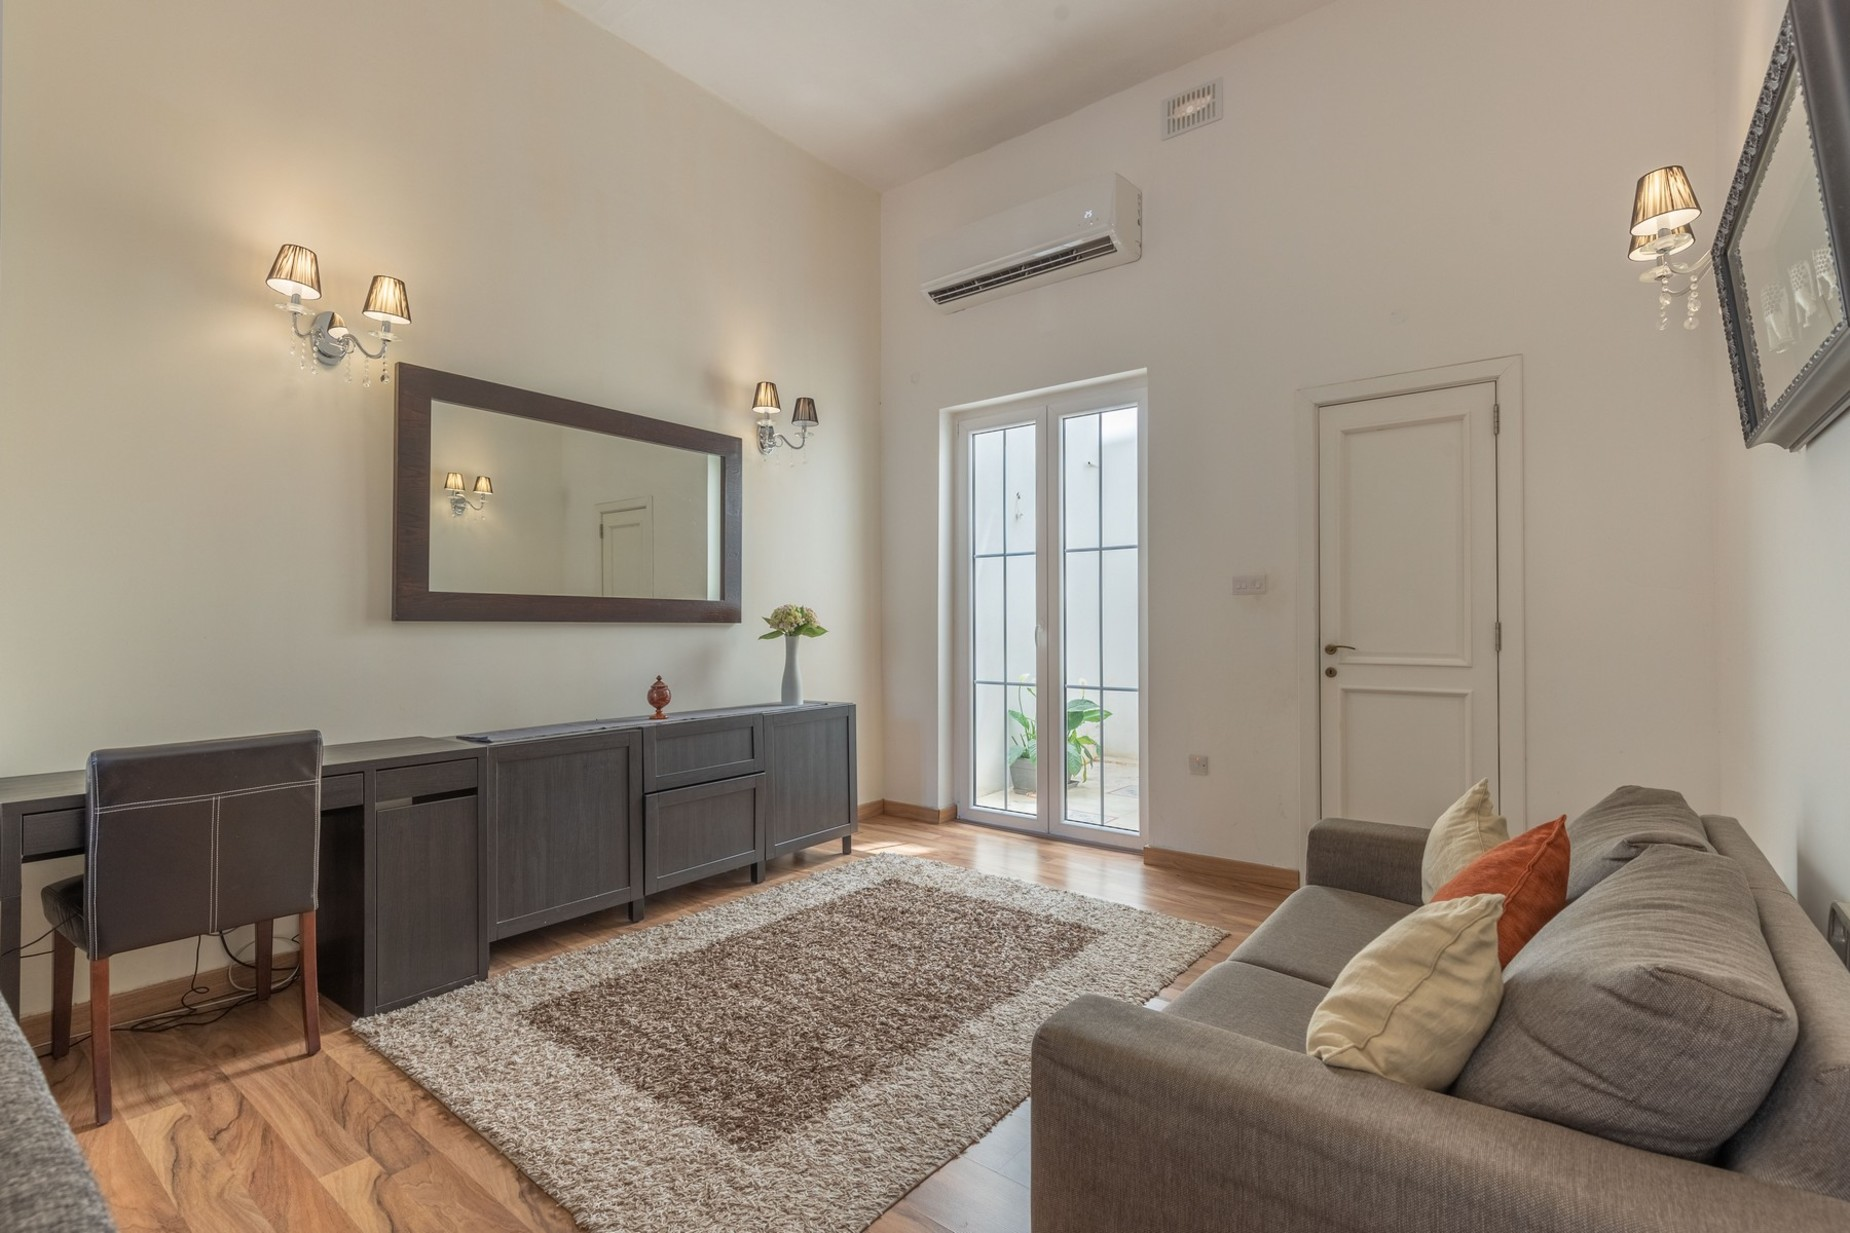 5 bed Town House For Rent in Sliema, Sliema - thumb 6